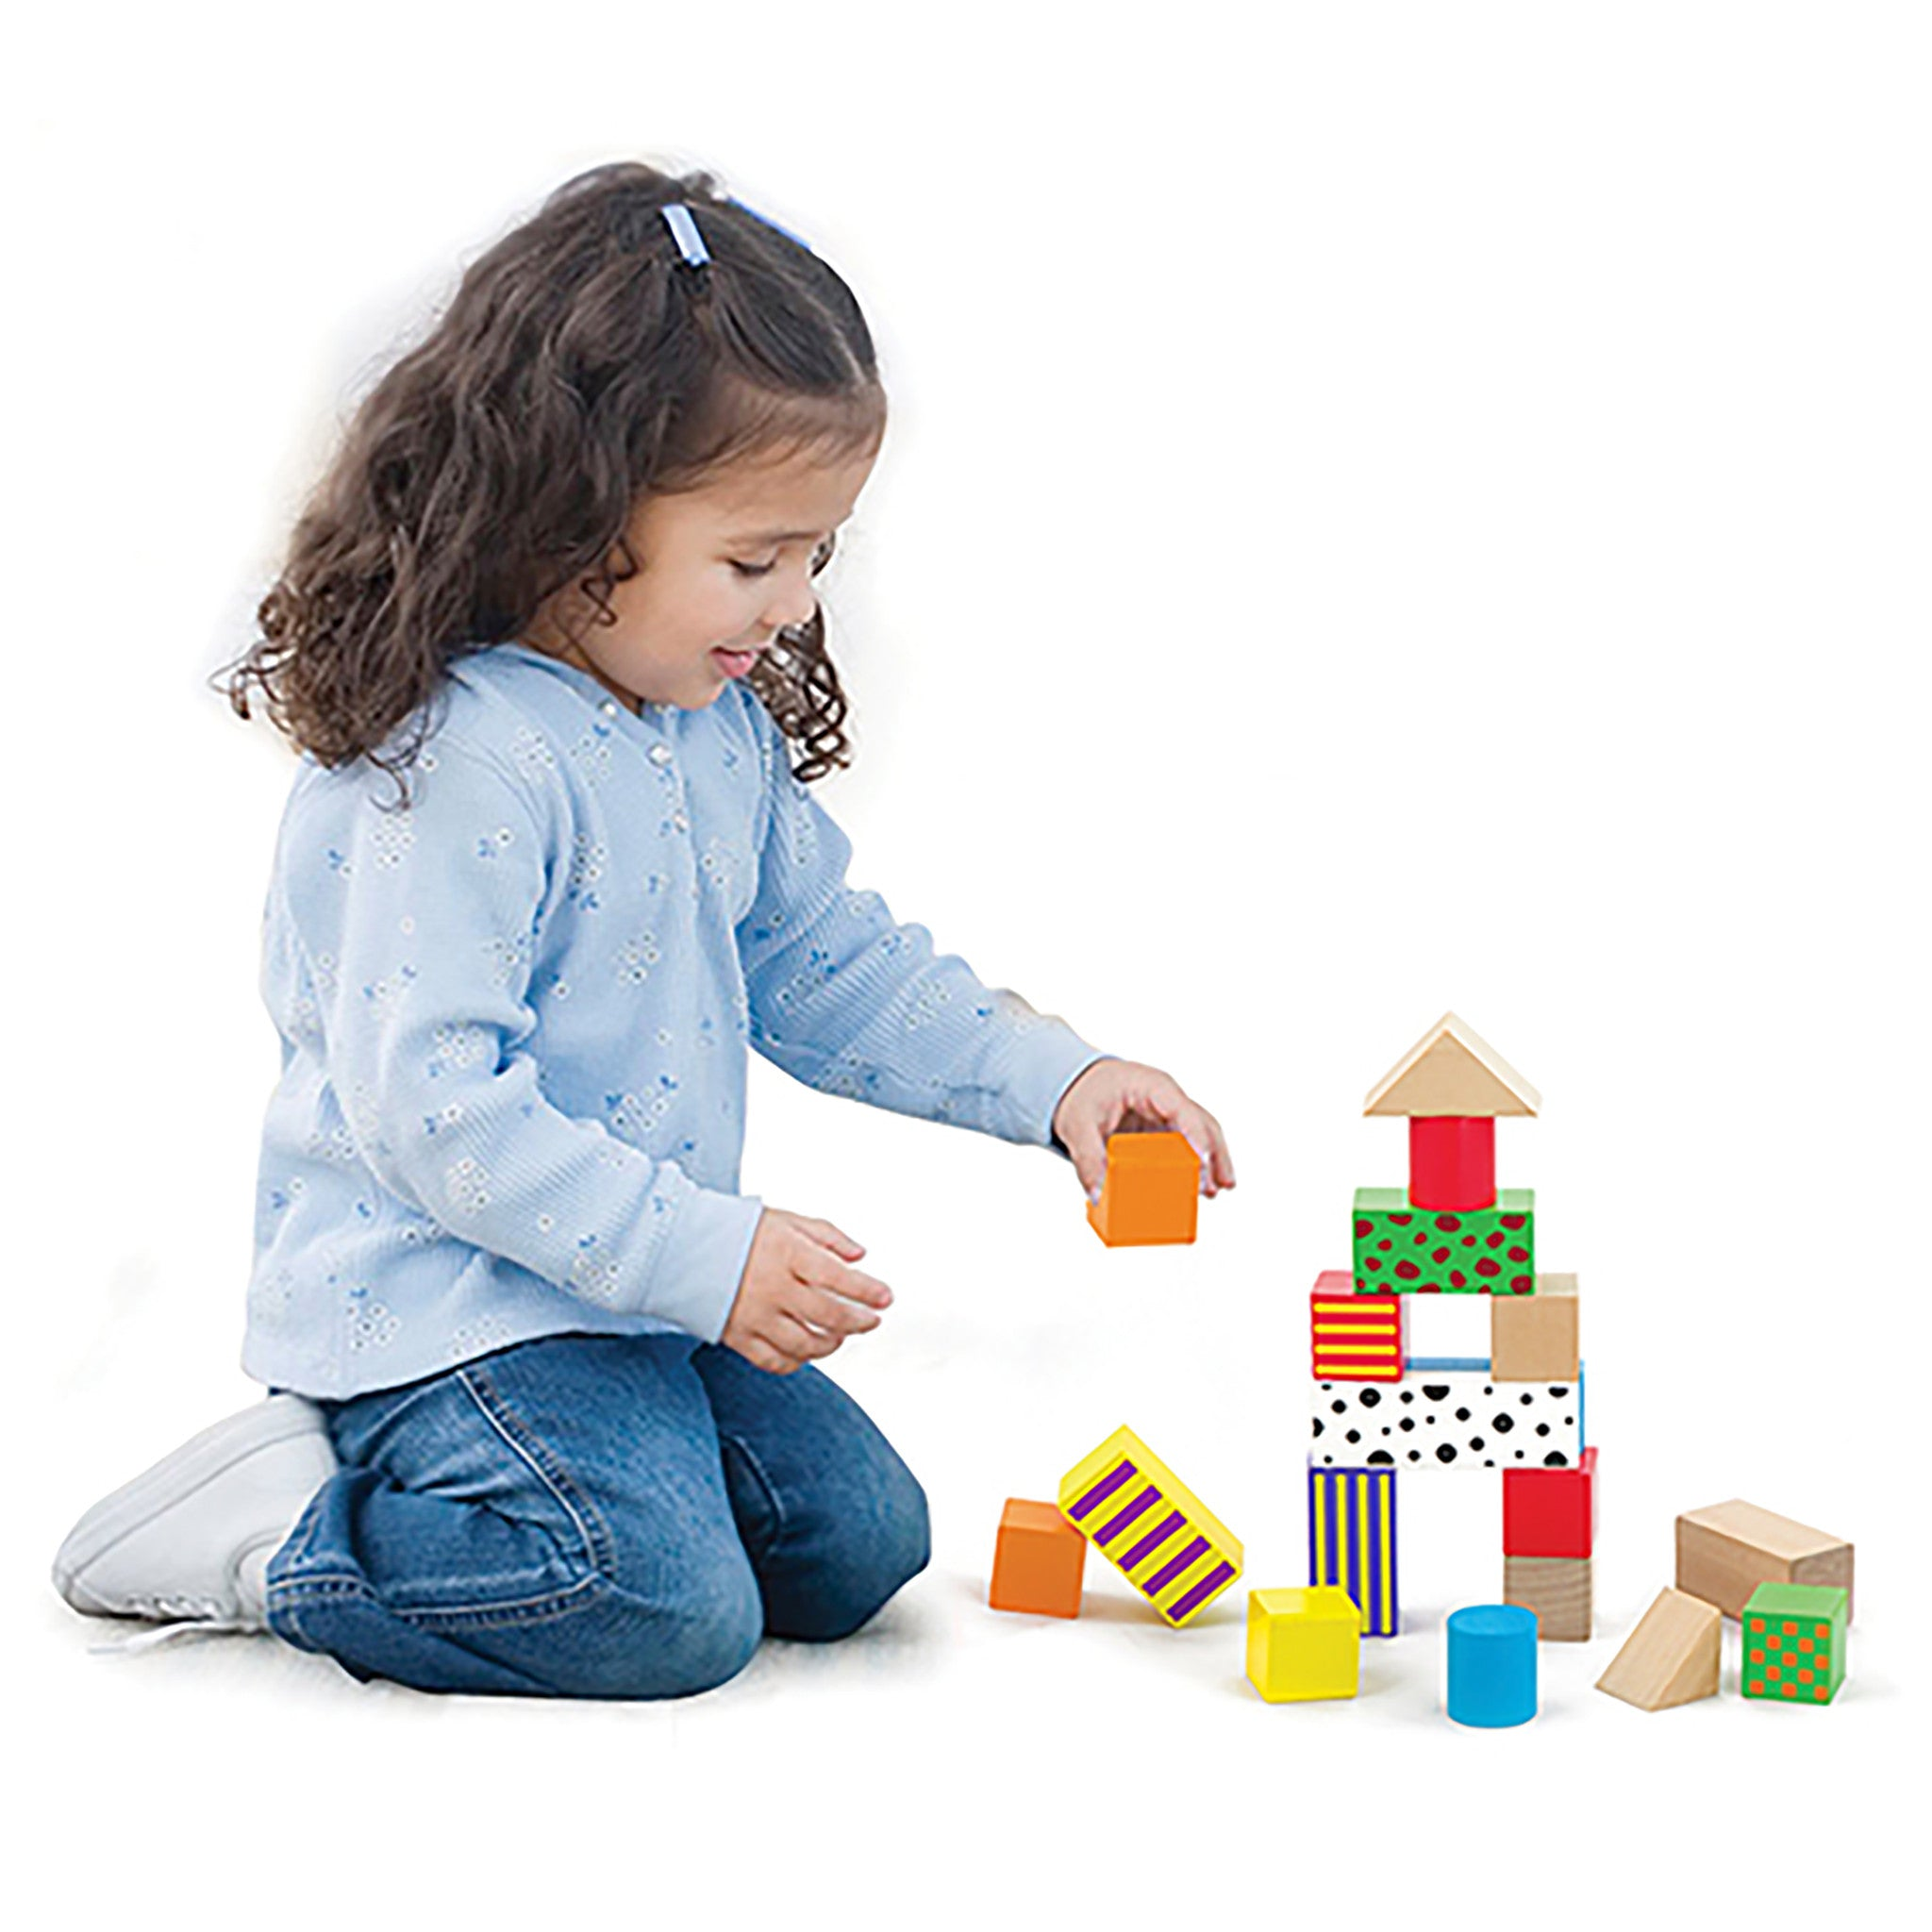 Colorful Patterned and Solid Wooden Building Blocks – The Getty Store